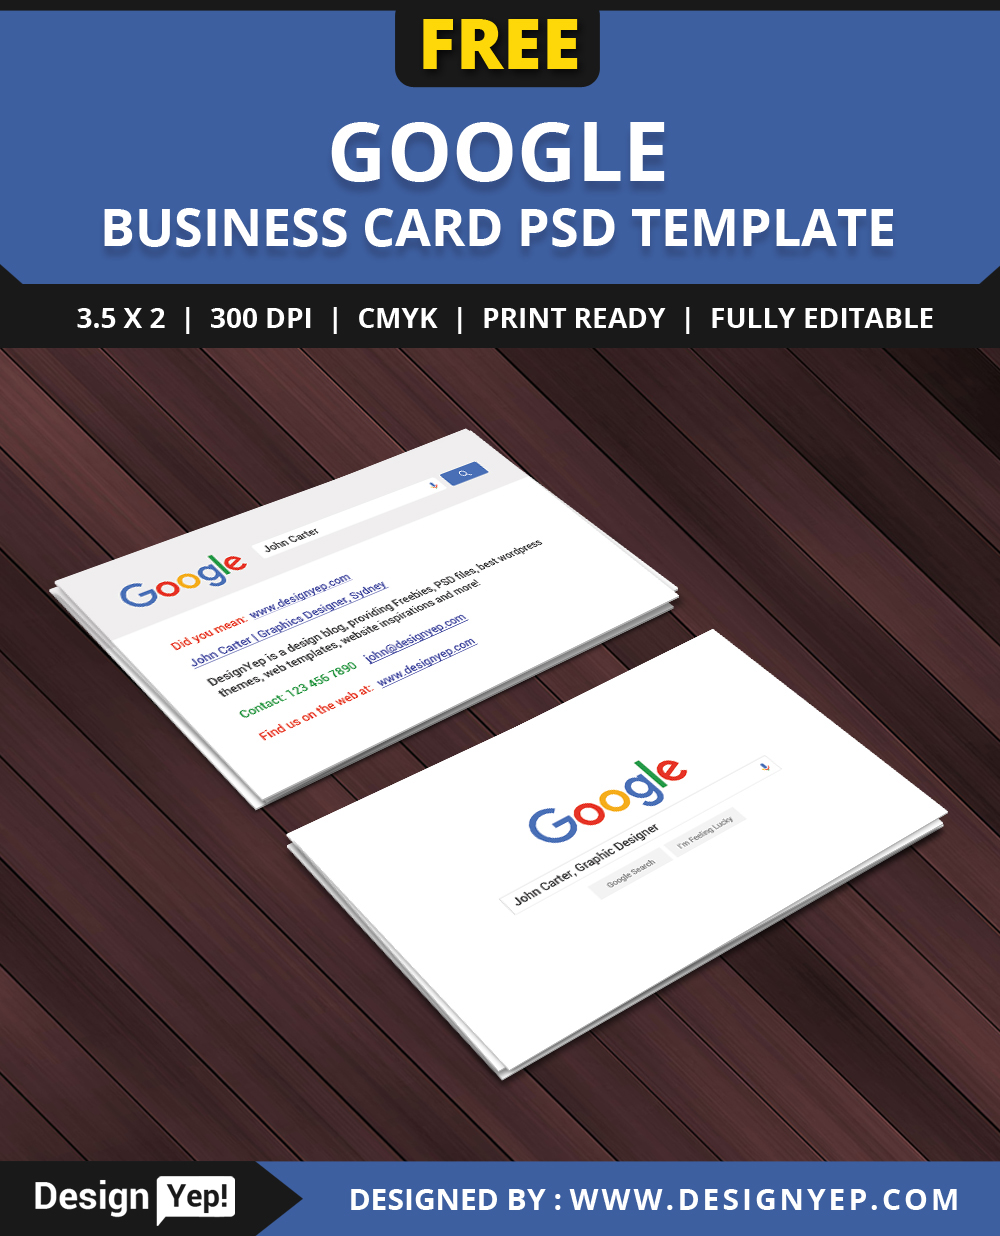 Free google interface business card psd template on behance wajeb Gallery